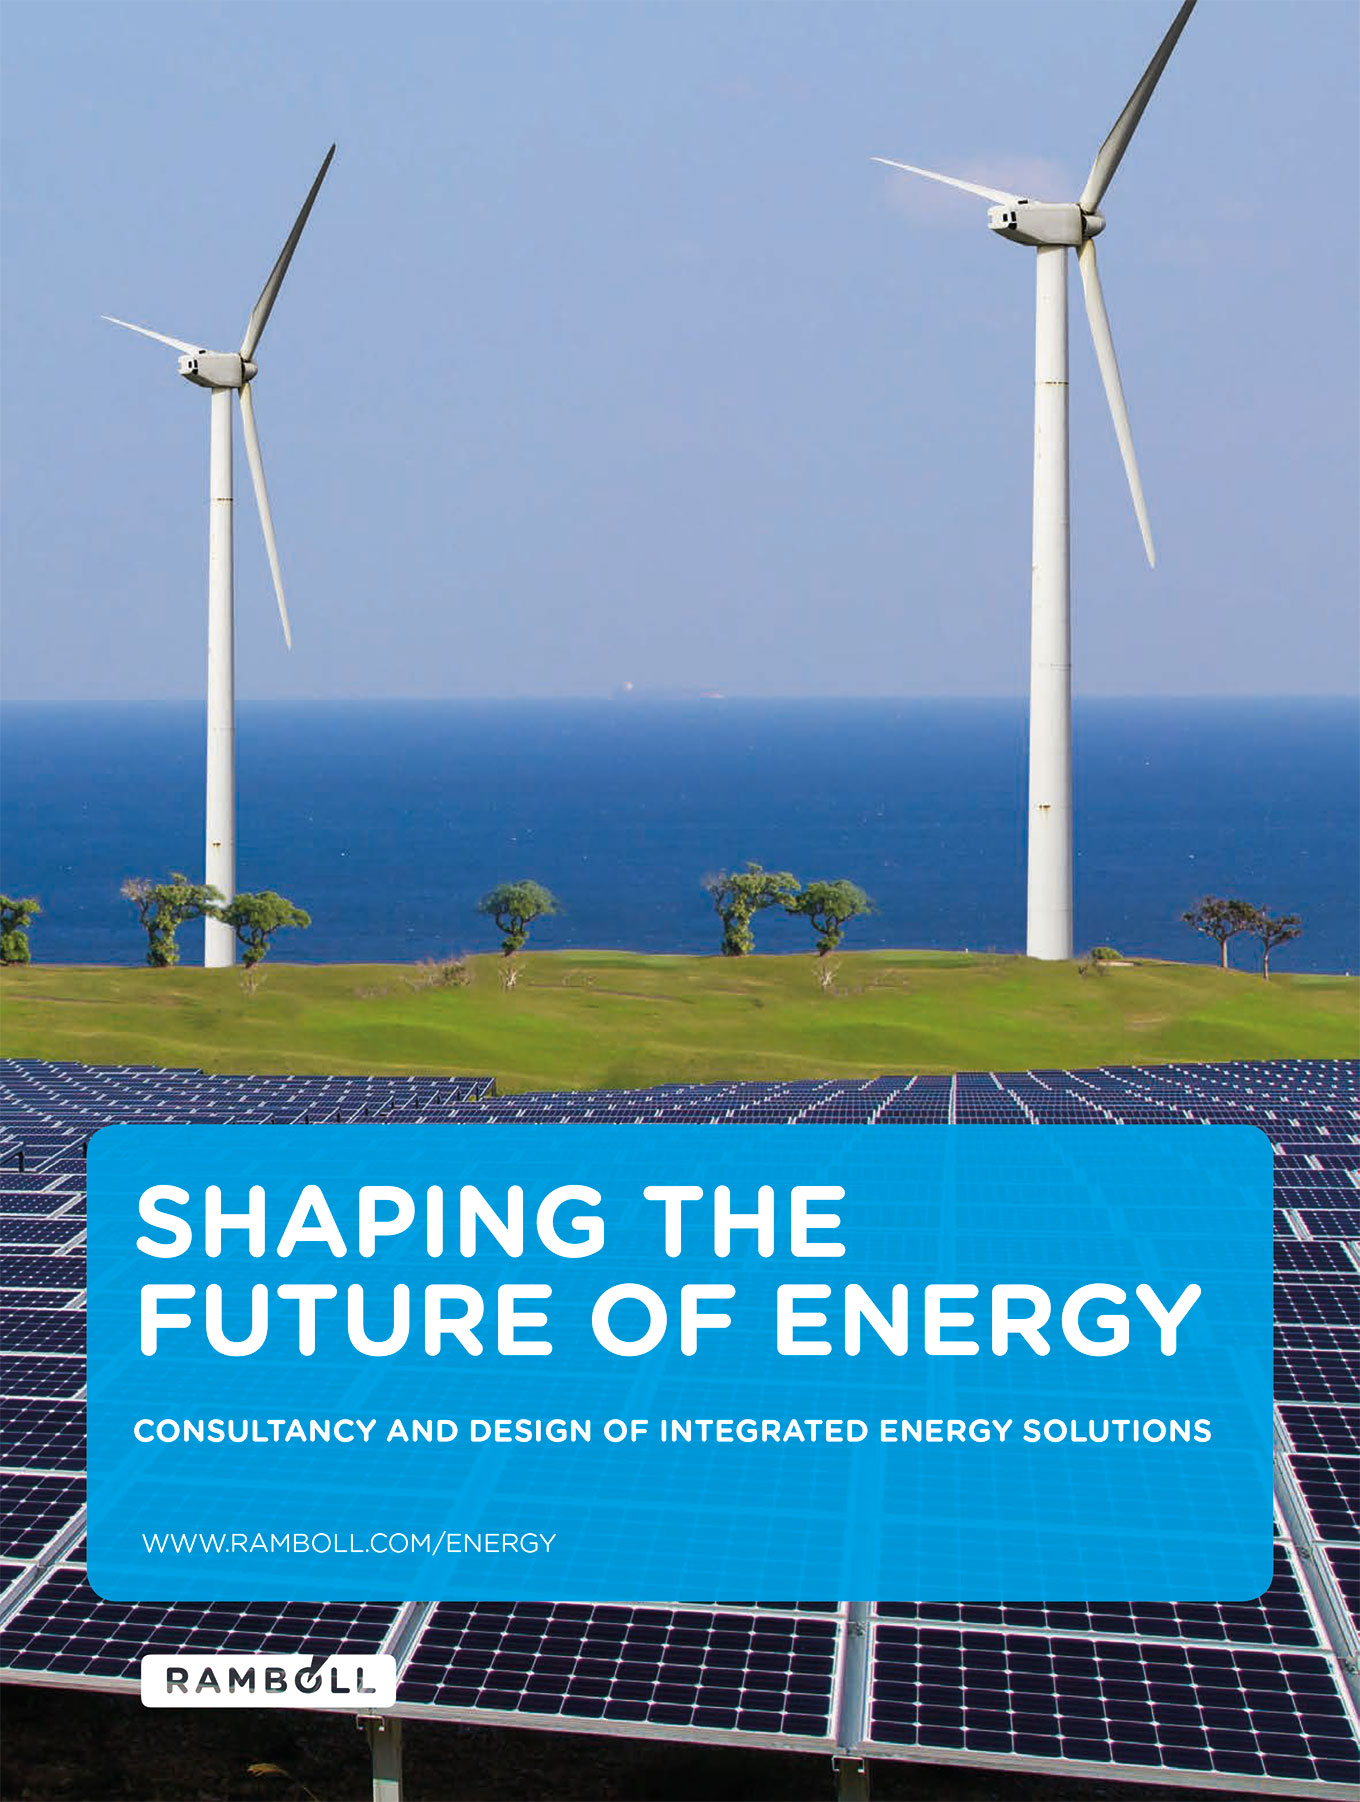 Energy consulting - Ramboll Group